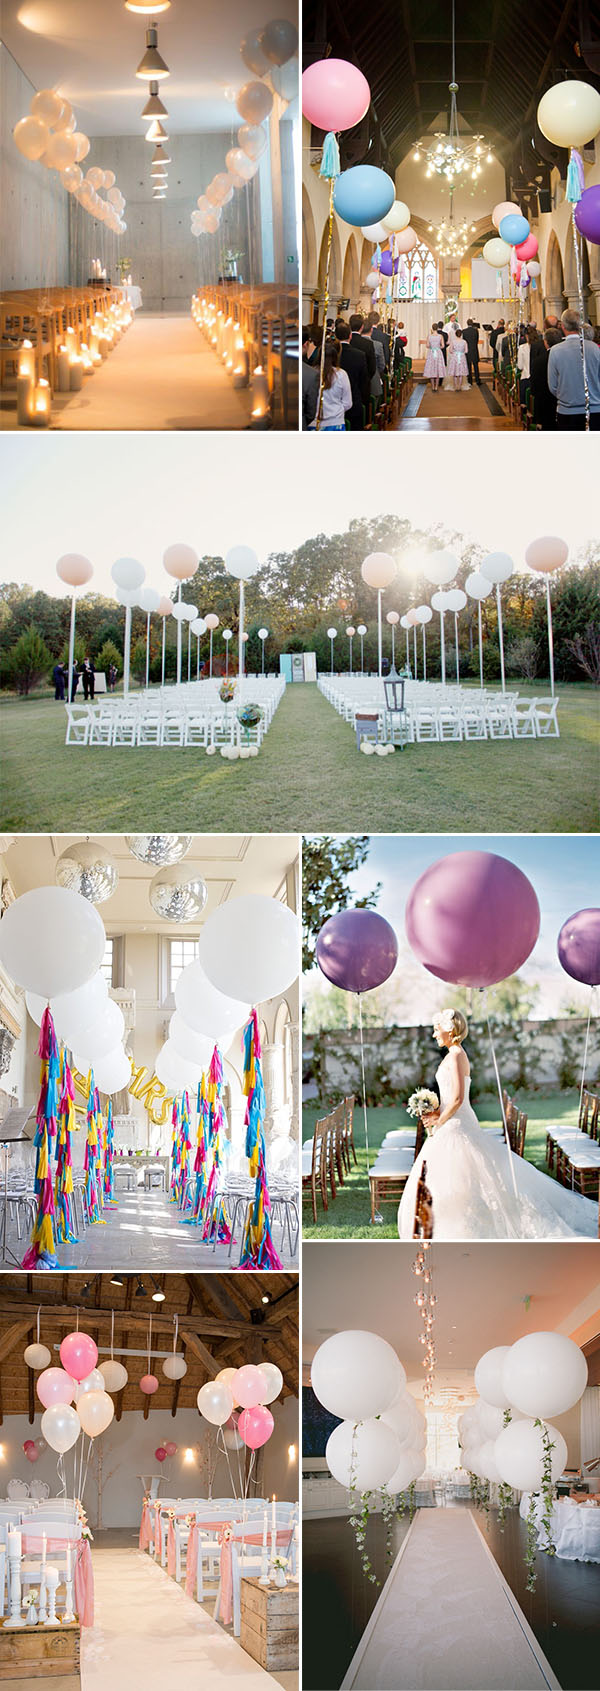 simple and lovely wedding ceremony aisle decoration ideas with balloons